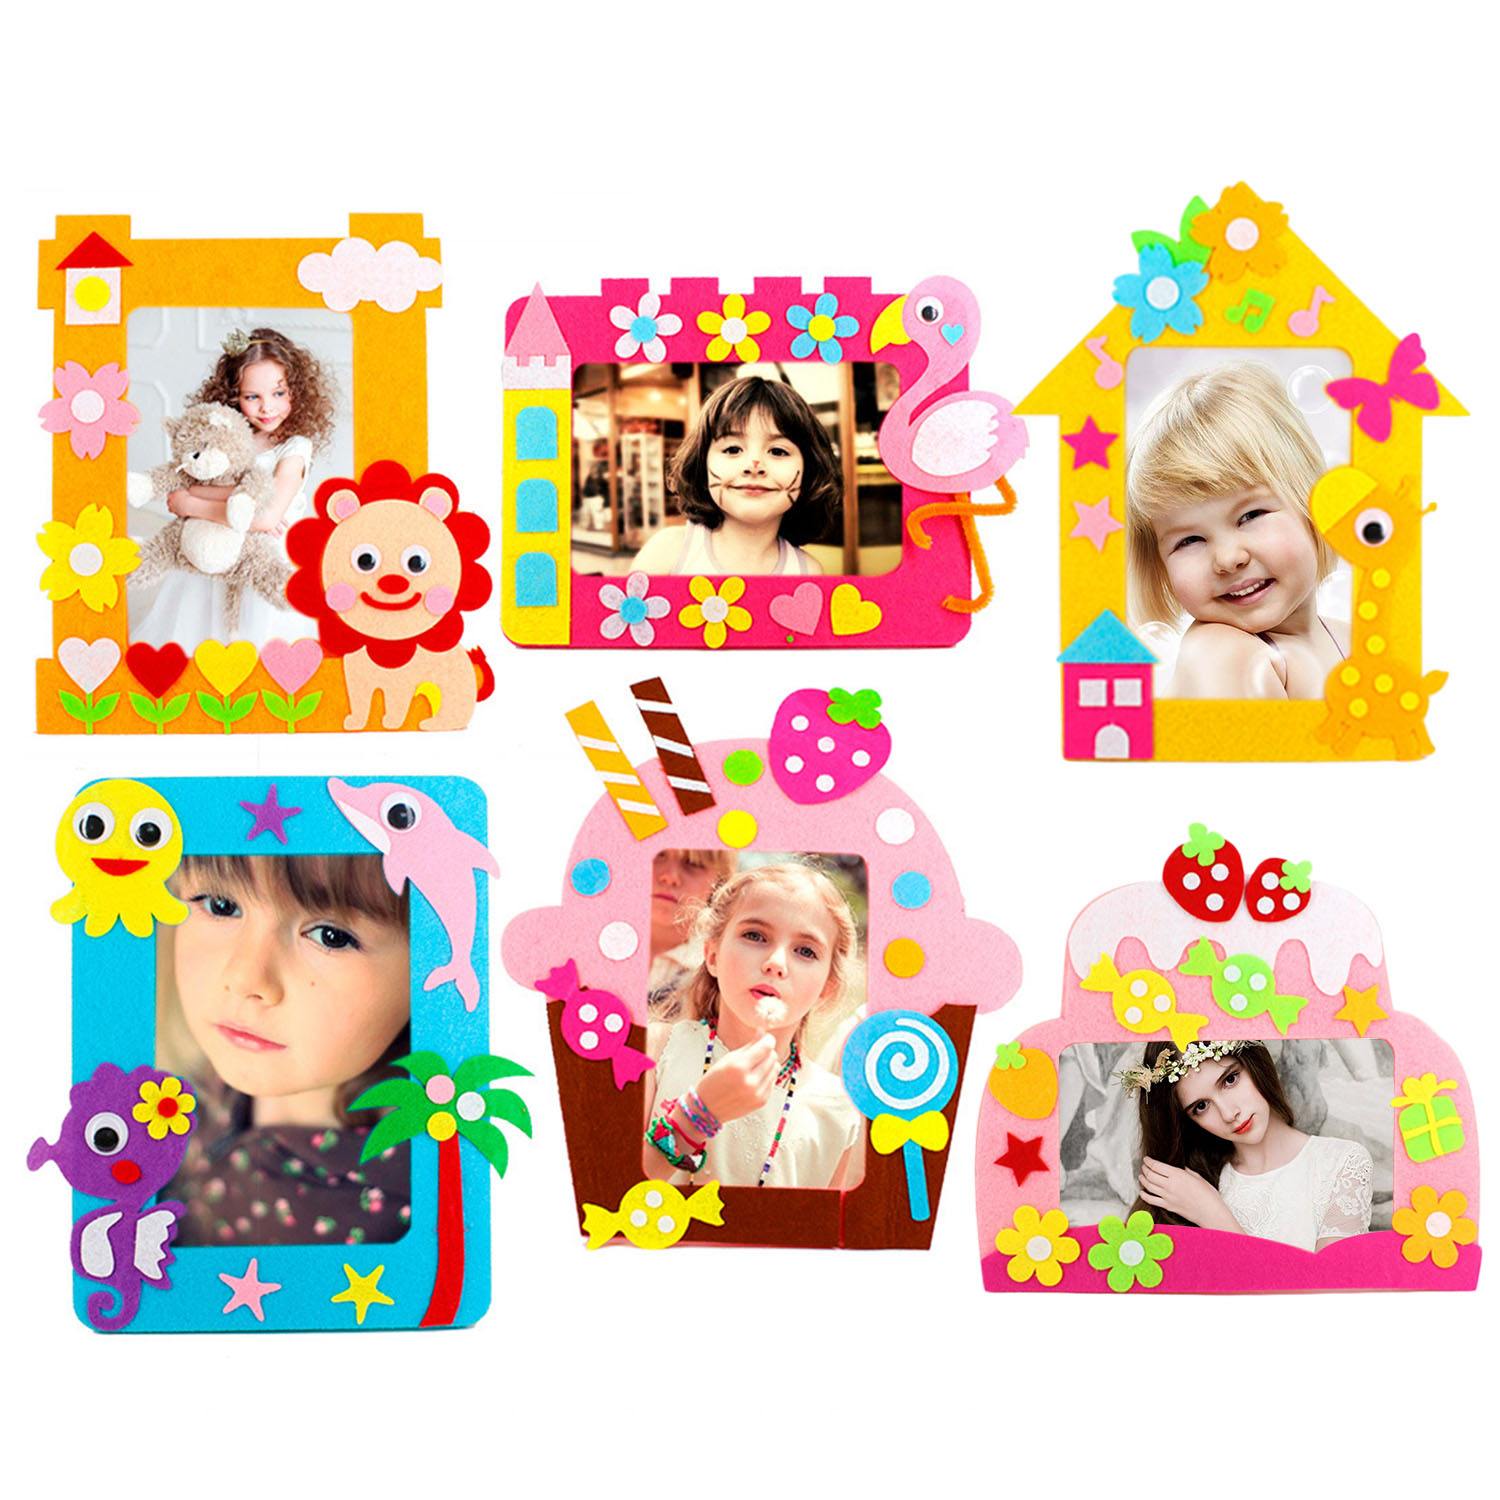 6pcs DIY Funny Photo Frame Cute Cartoon Non-woven Tabletop Picture Frame DIY Craft Kit For Kids Children Christmas Birthday Gift